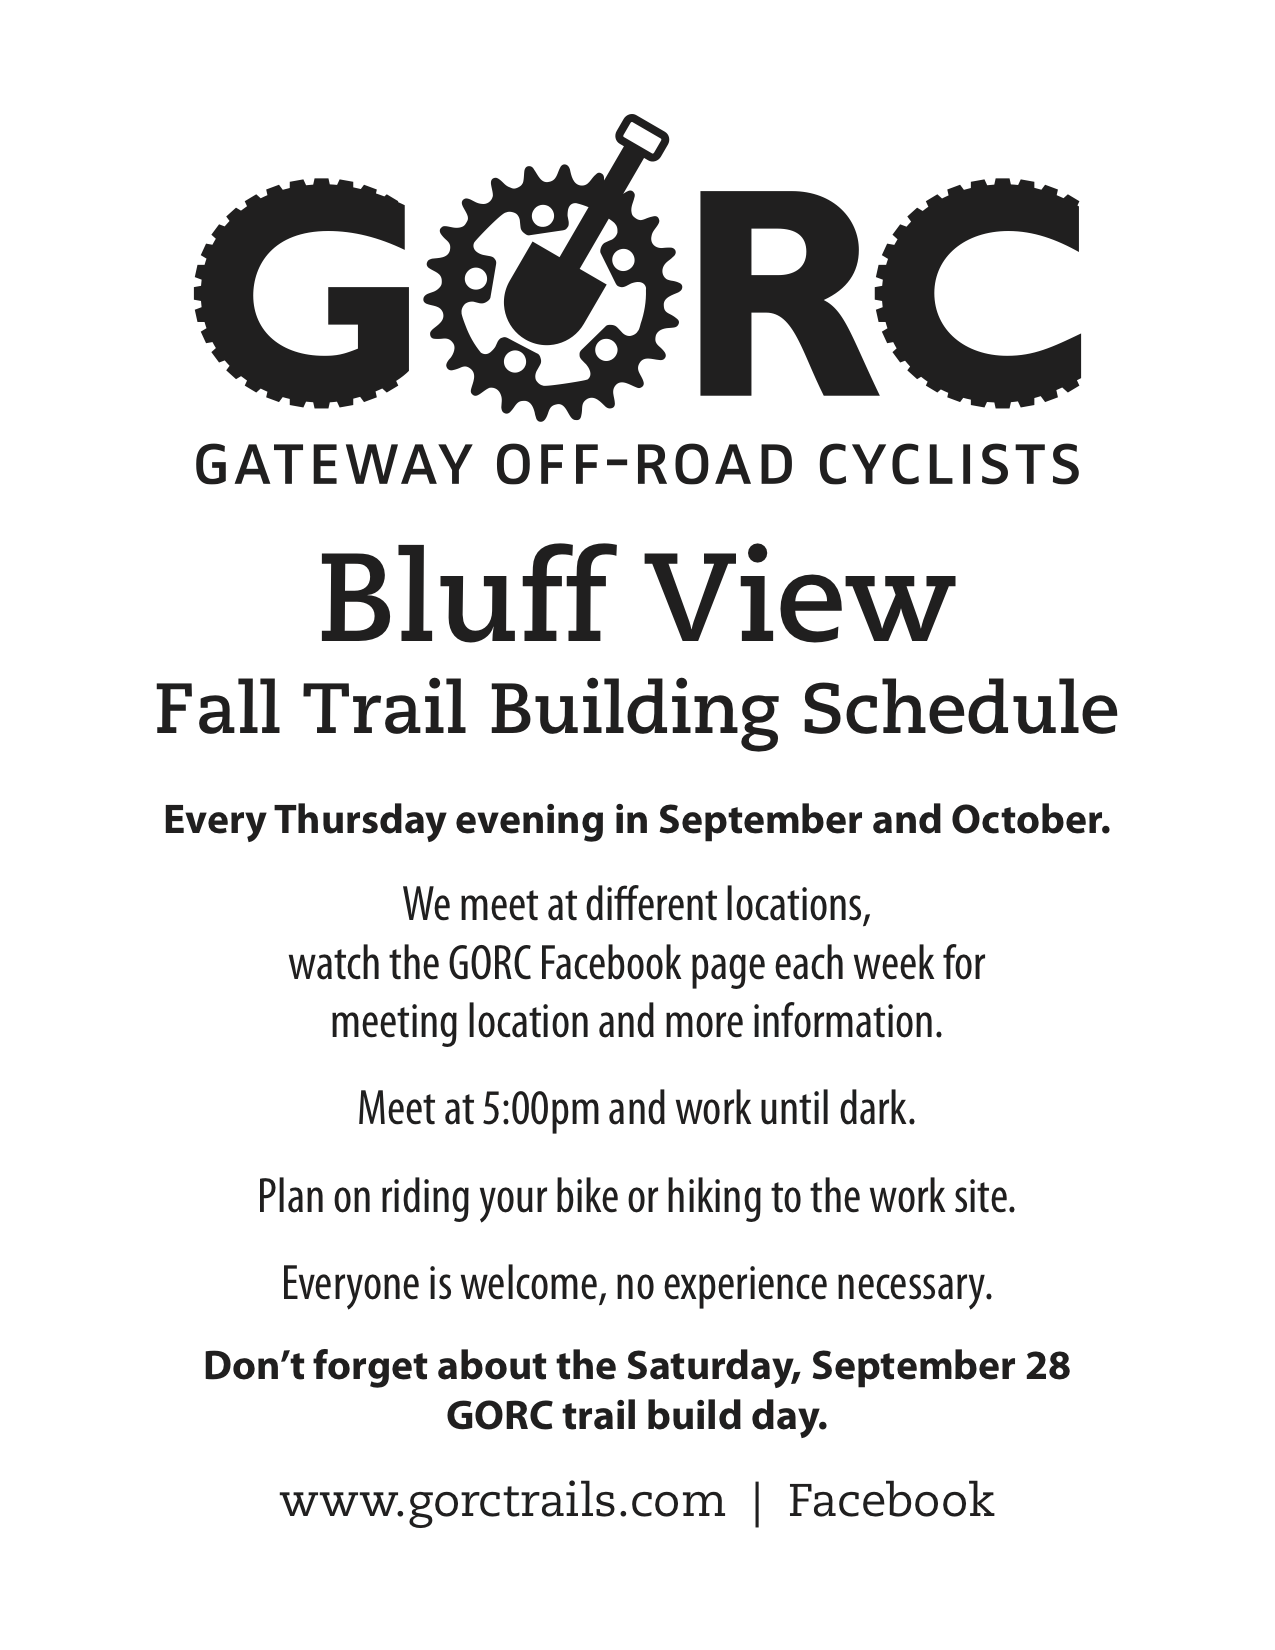 Bluff View Fall Trail Building Schedule